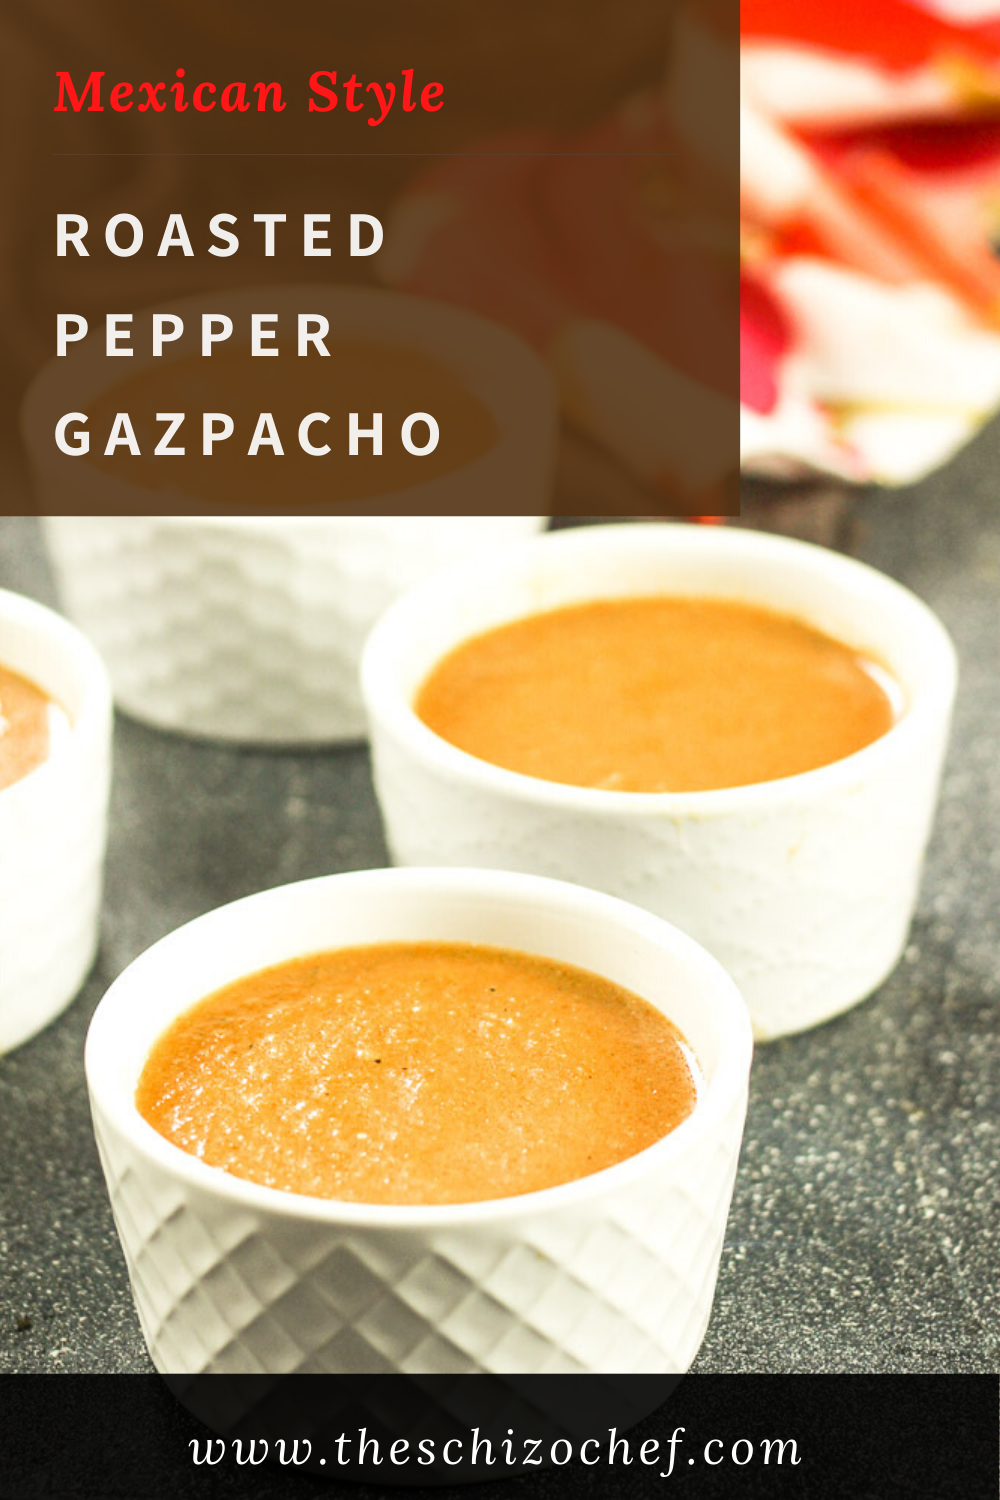 bowls of Roasted Pepper Gazpacho with text